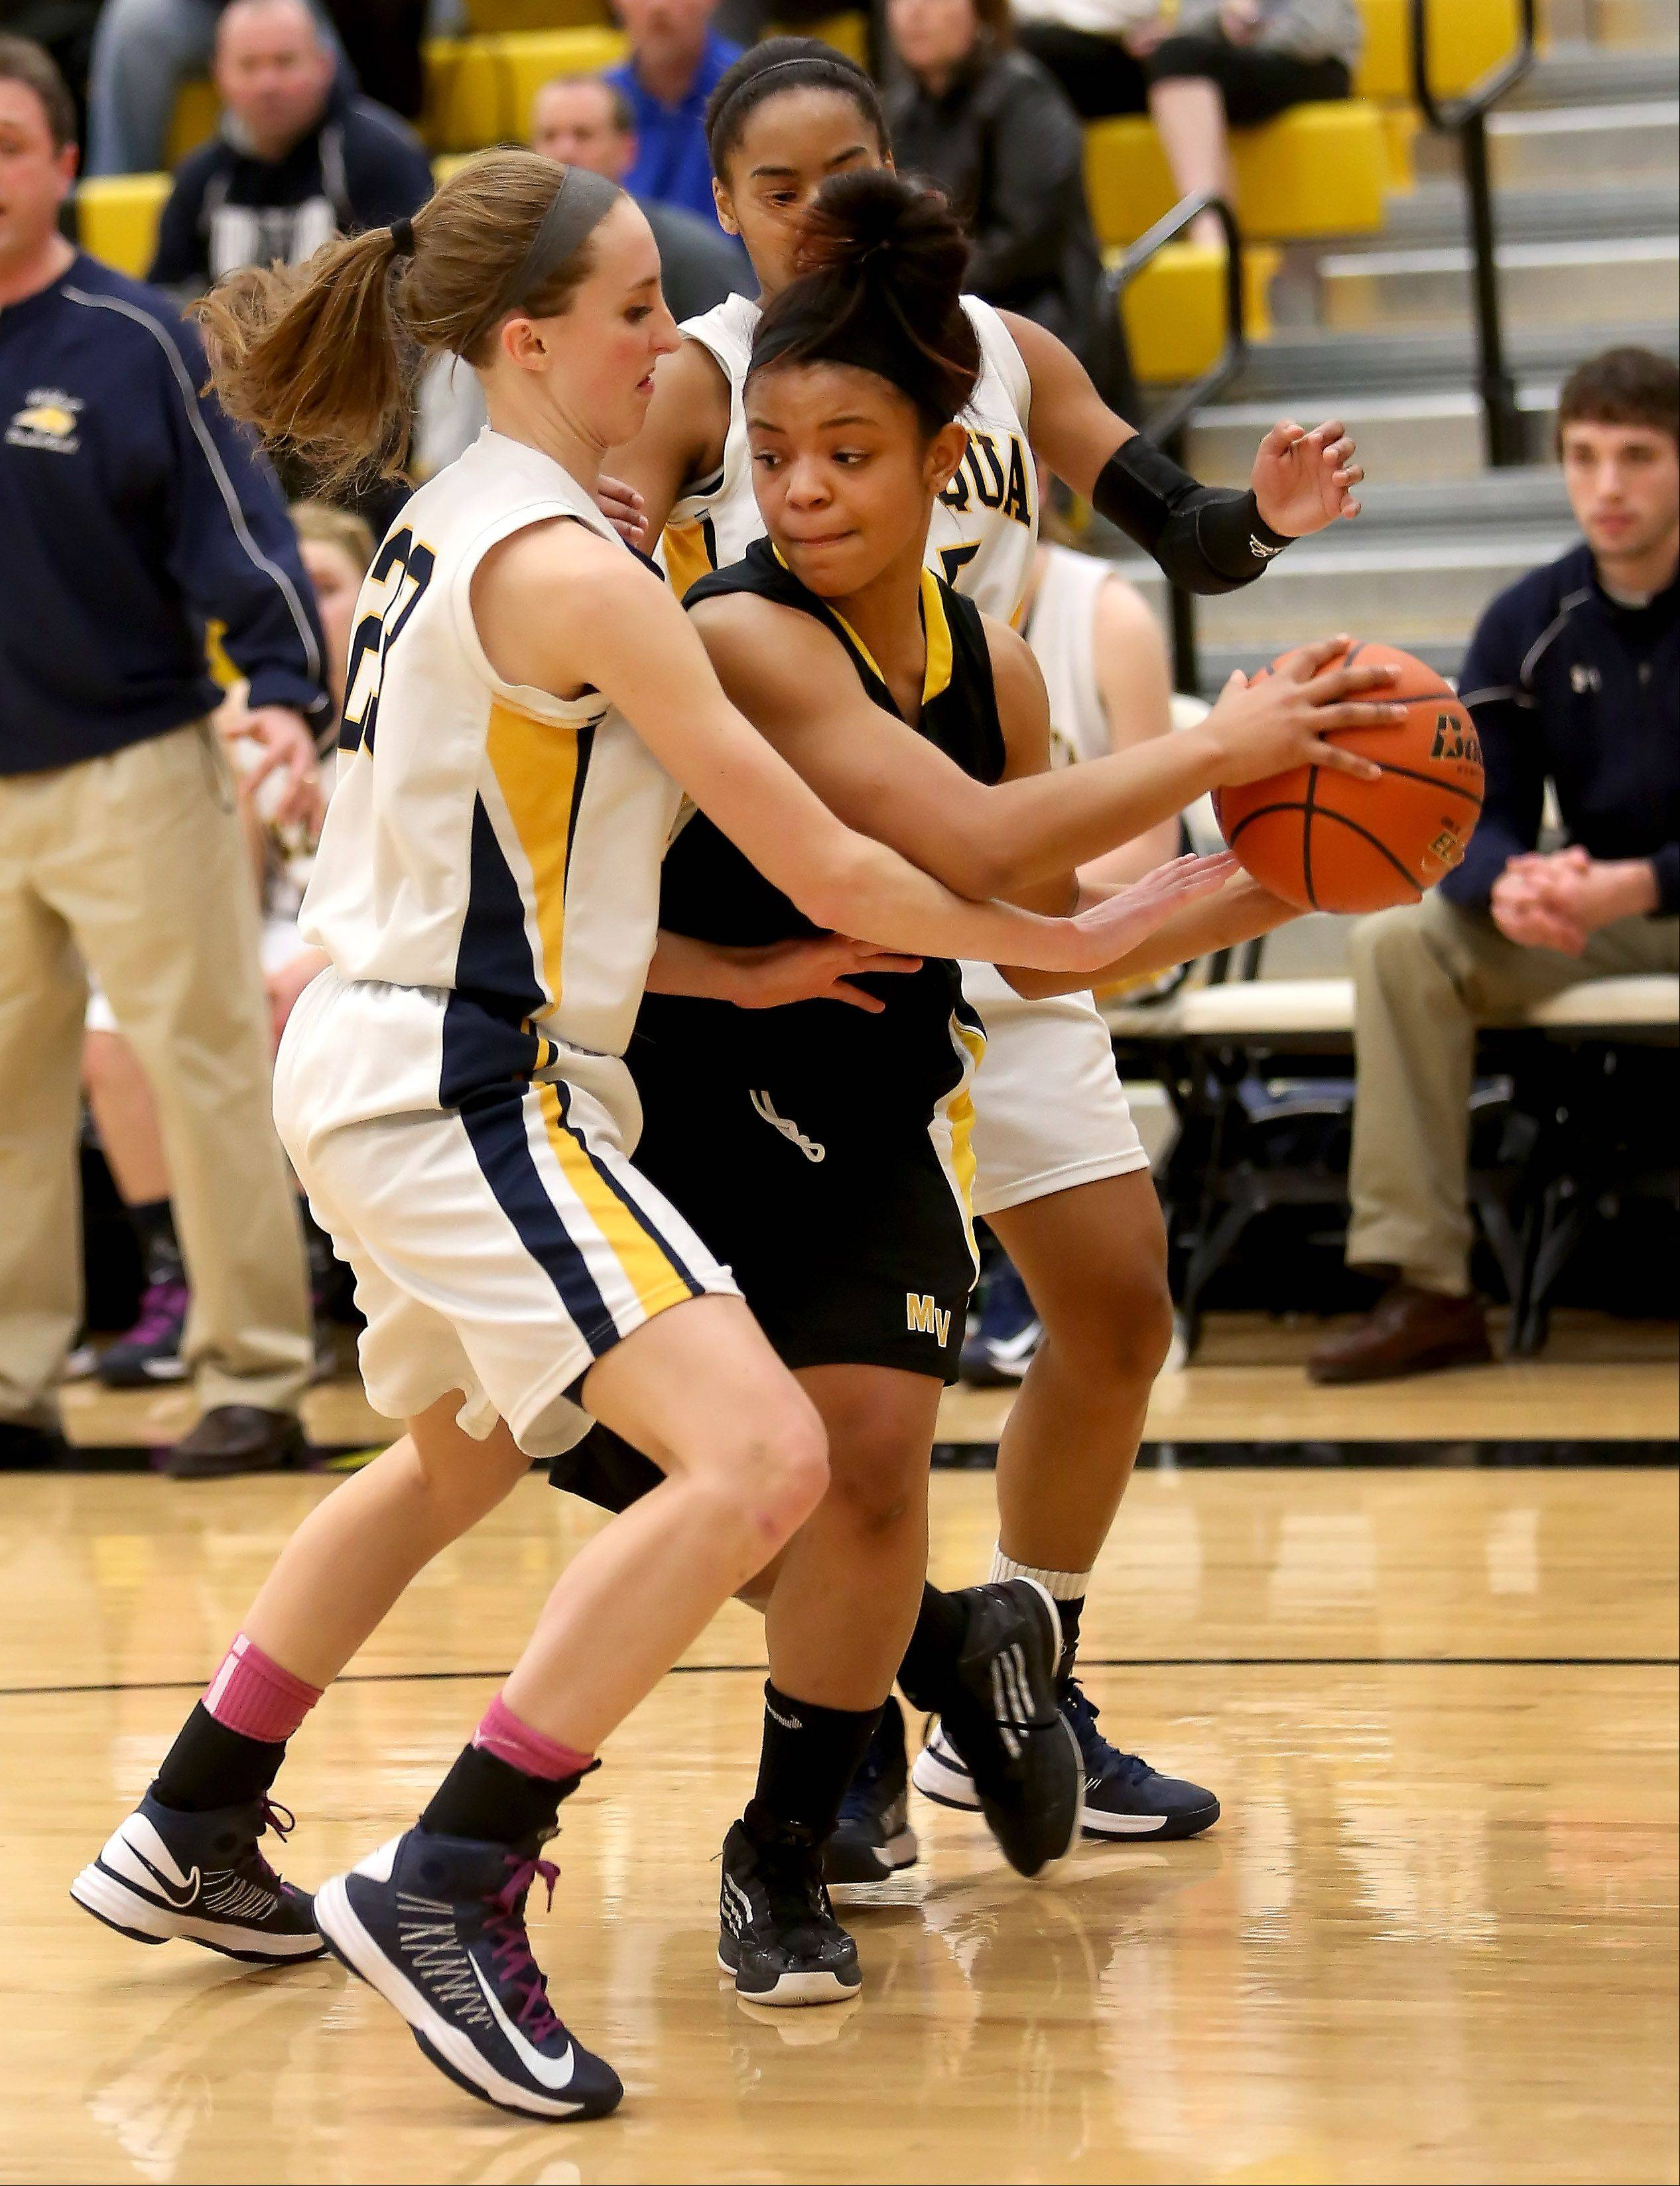 Kellee Clay of Metea Valley, right, looks for room to pass around Allison Hedrick of Neuqua Valley during girls basketball Class 4A regional final on Friday in Aurora.